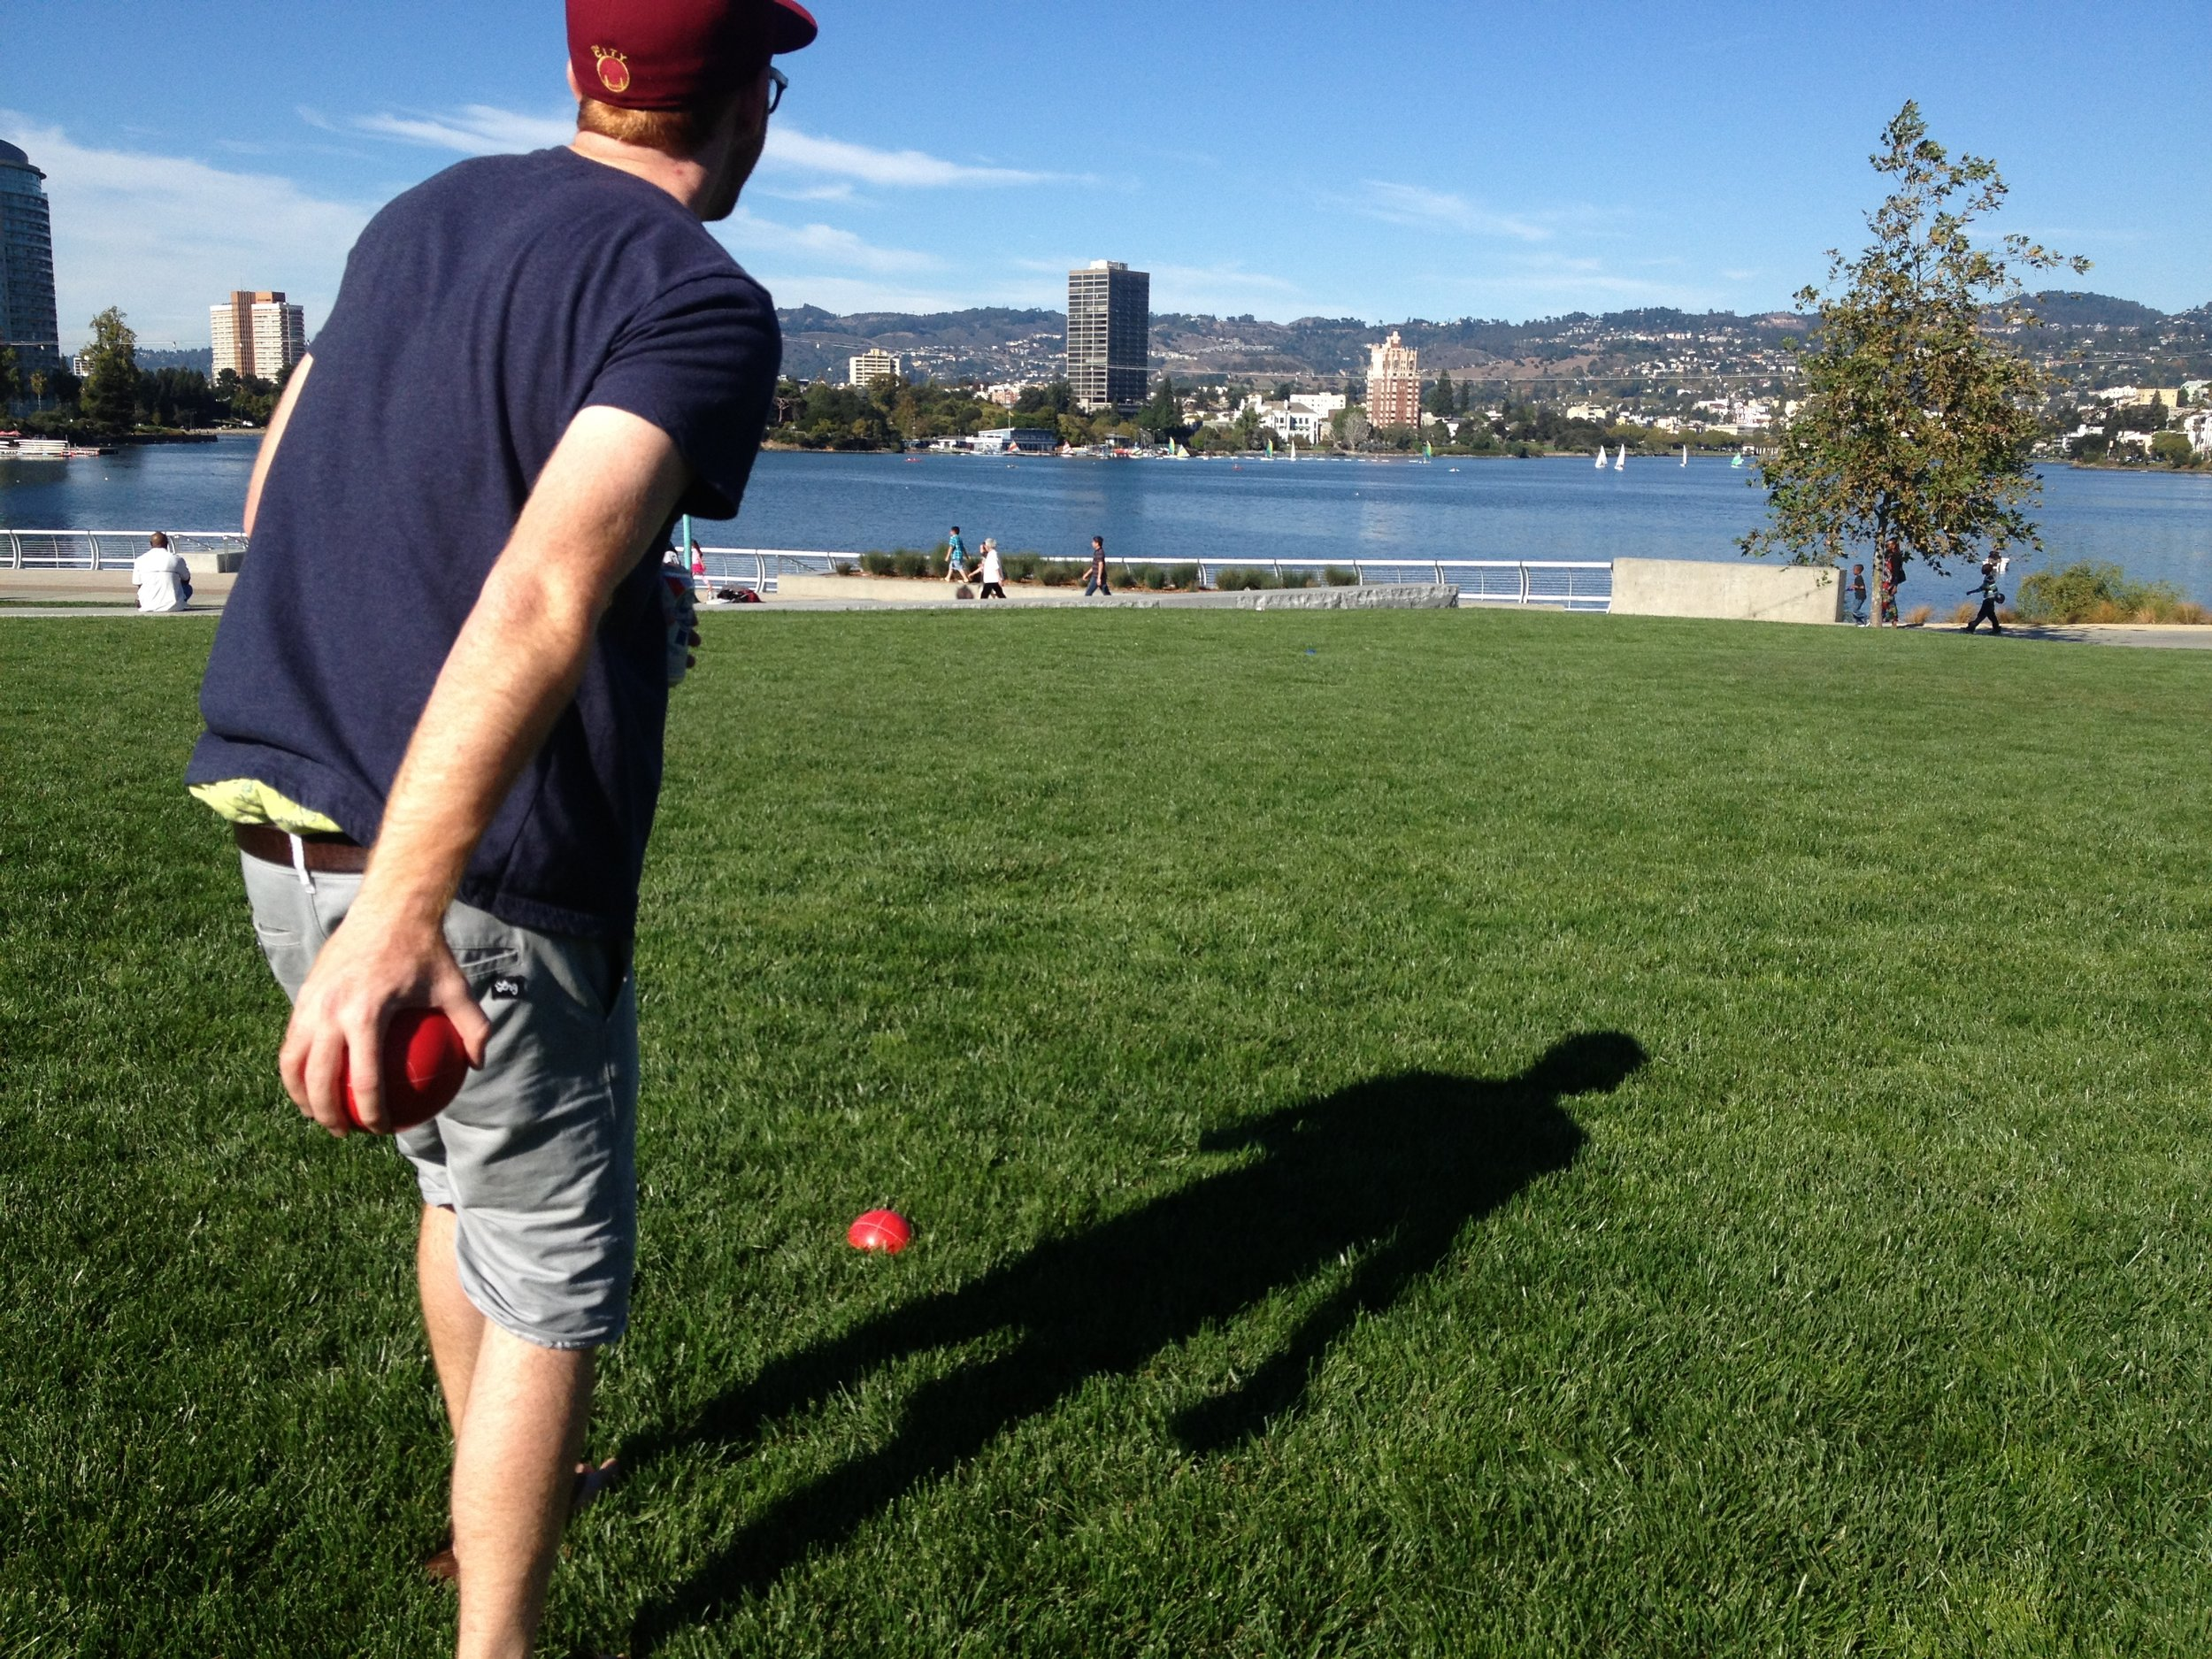 Bocce Ball in Oakland!